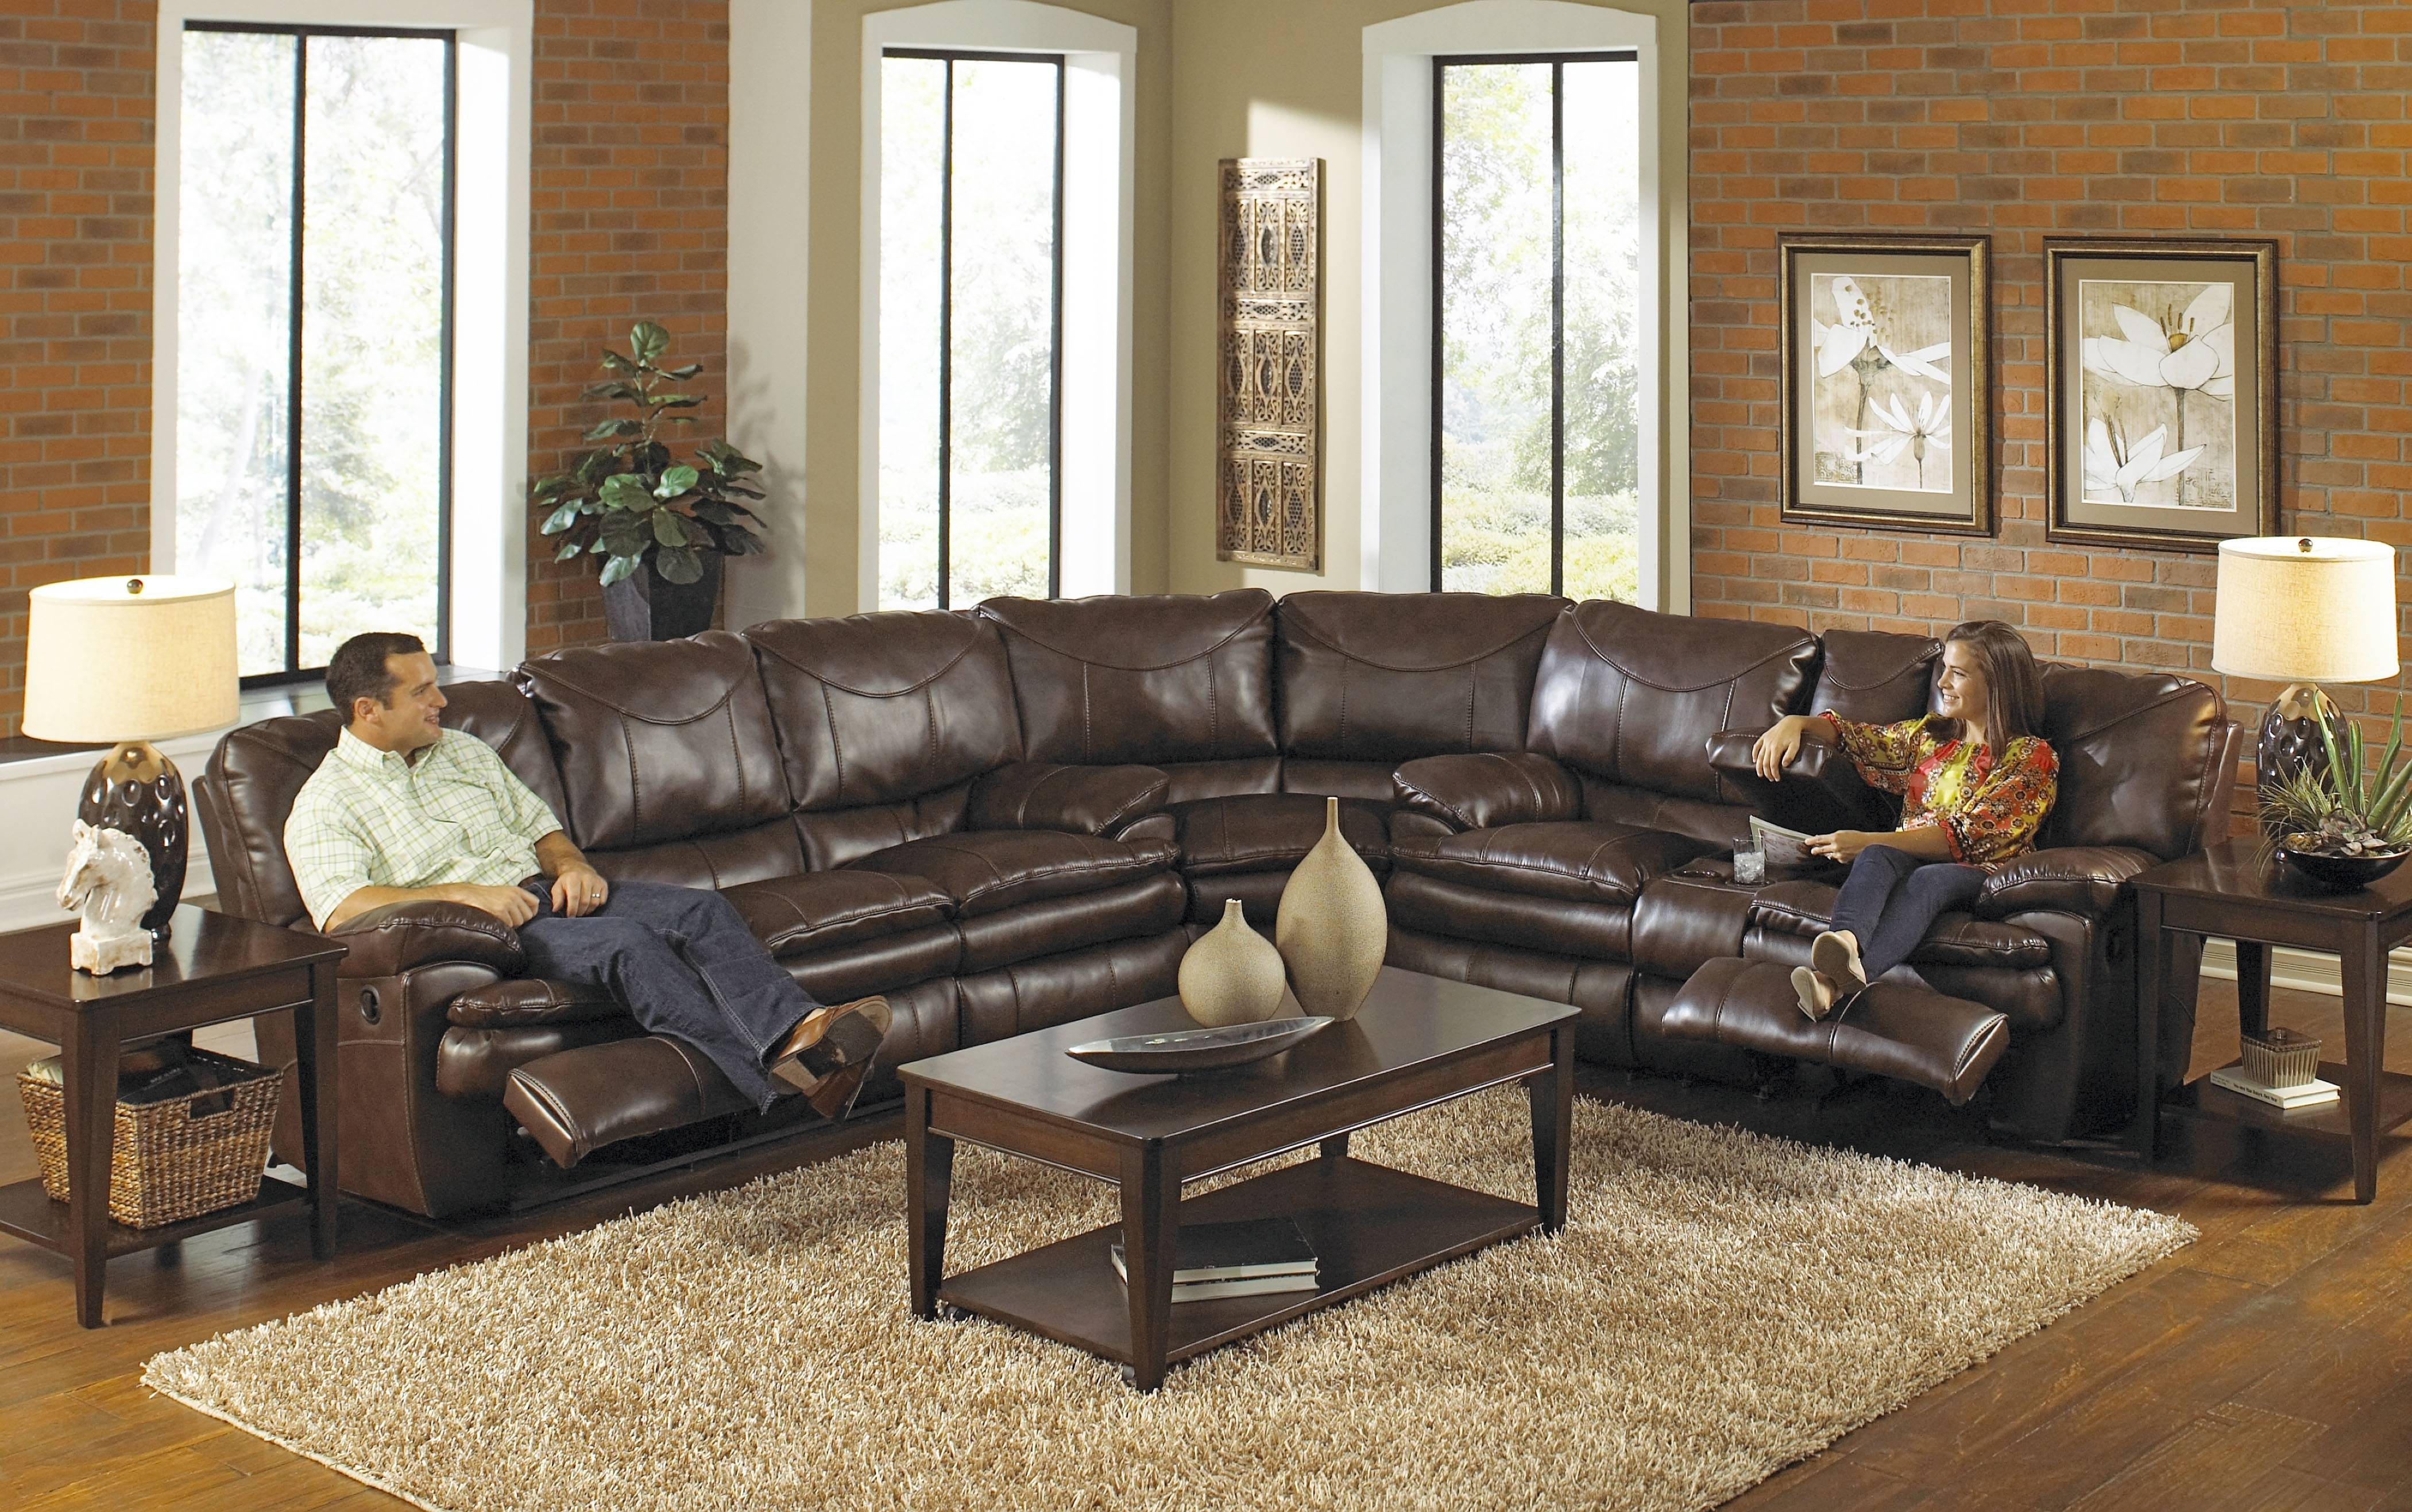 Fascinating Sectional Sleeper Sofa With Recliners 89 For for Craftmaster Sectional Sofa (Image 15 of 30)